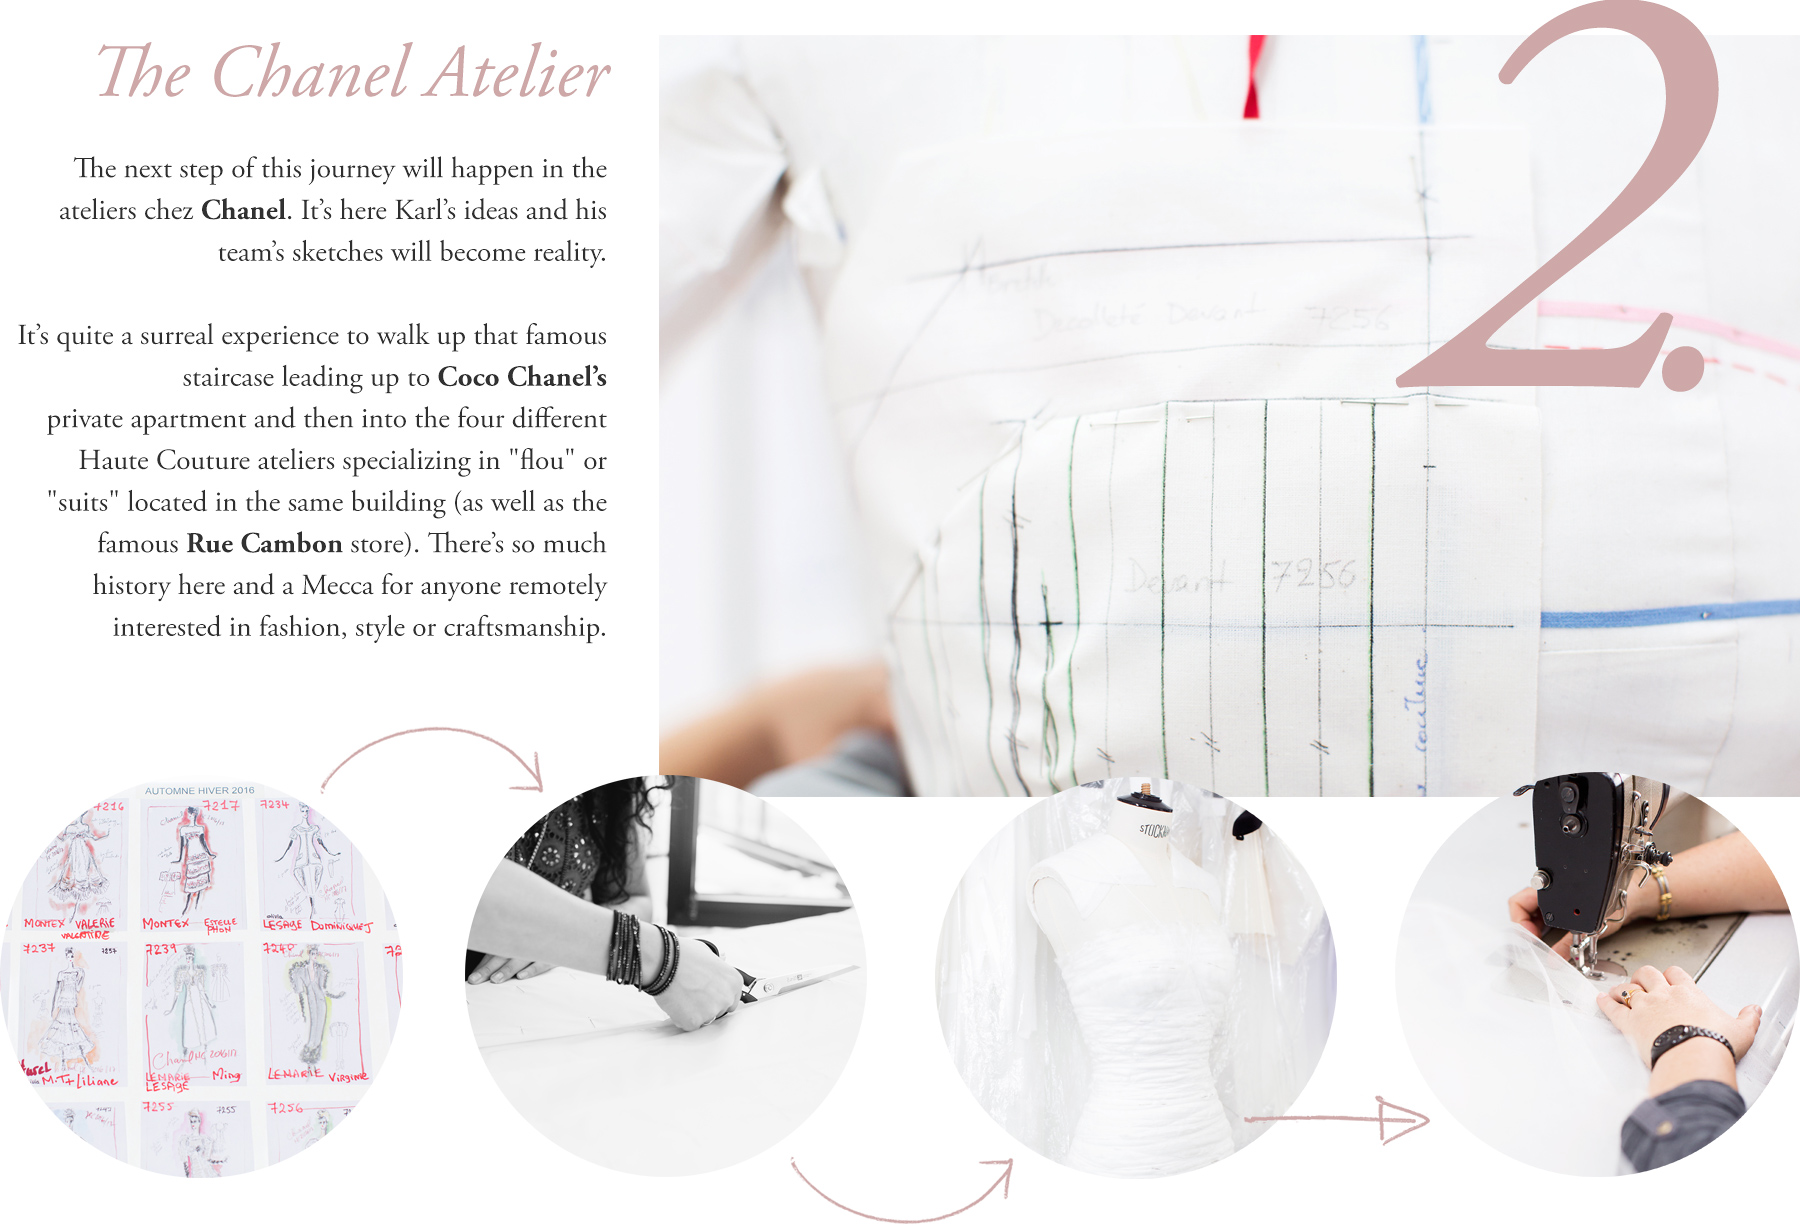 Inside the Chanel Ateliers